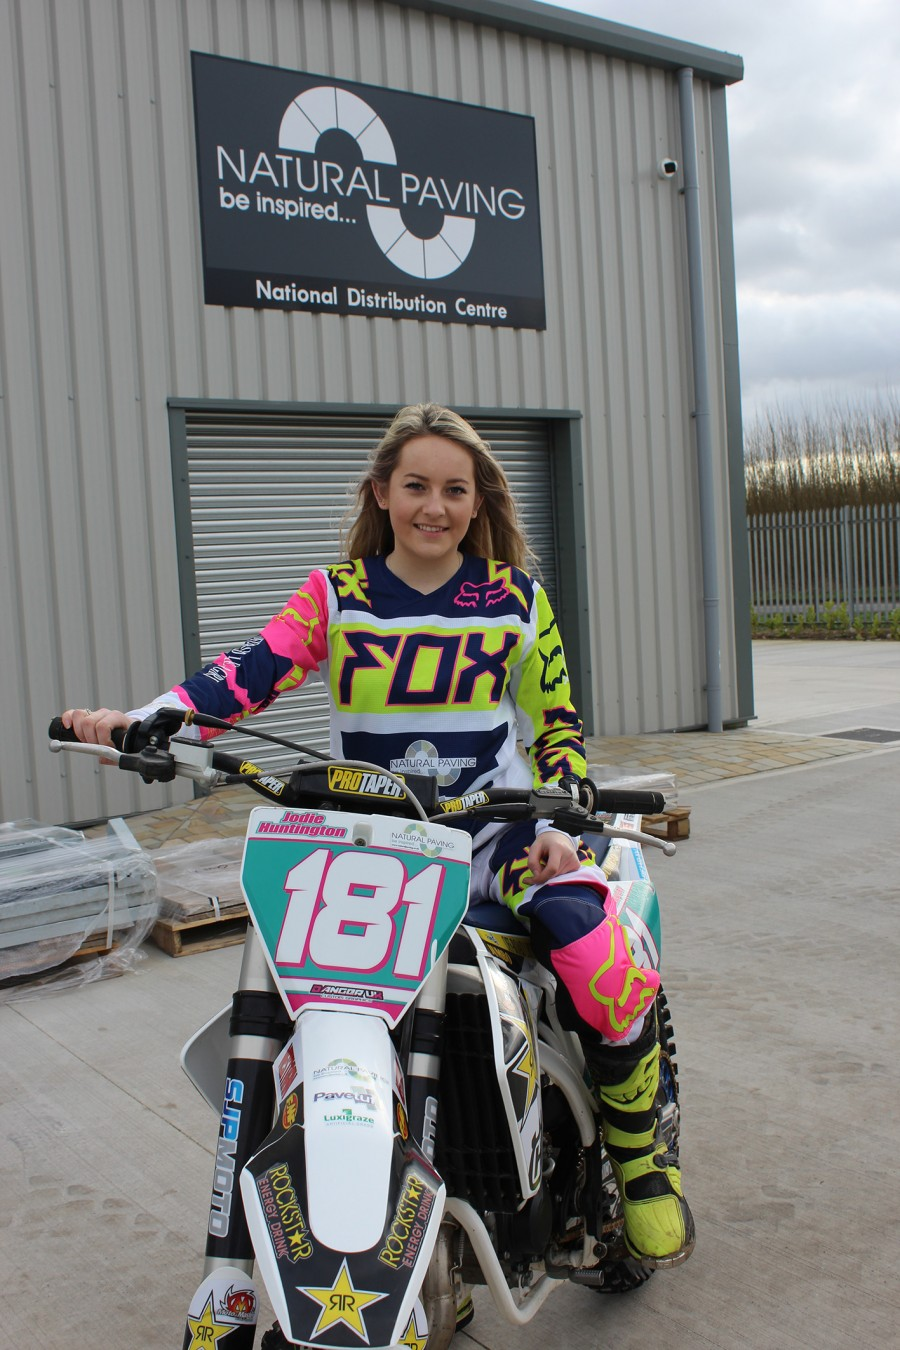 Natural Paving Products TS revs up with new apprentice sponsorship deal